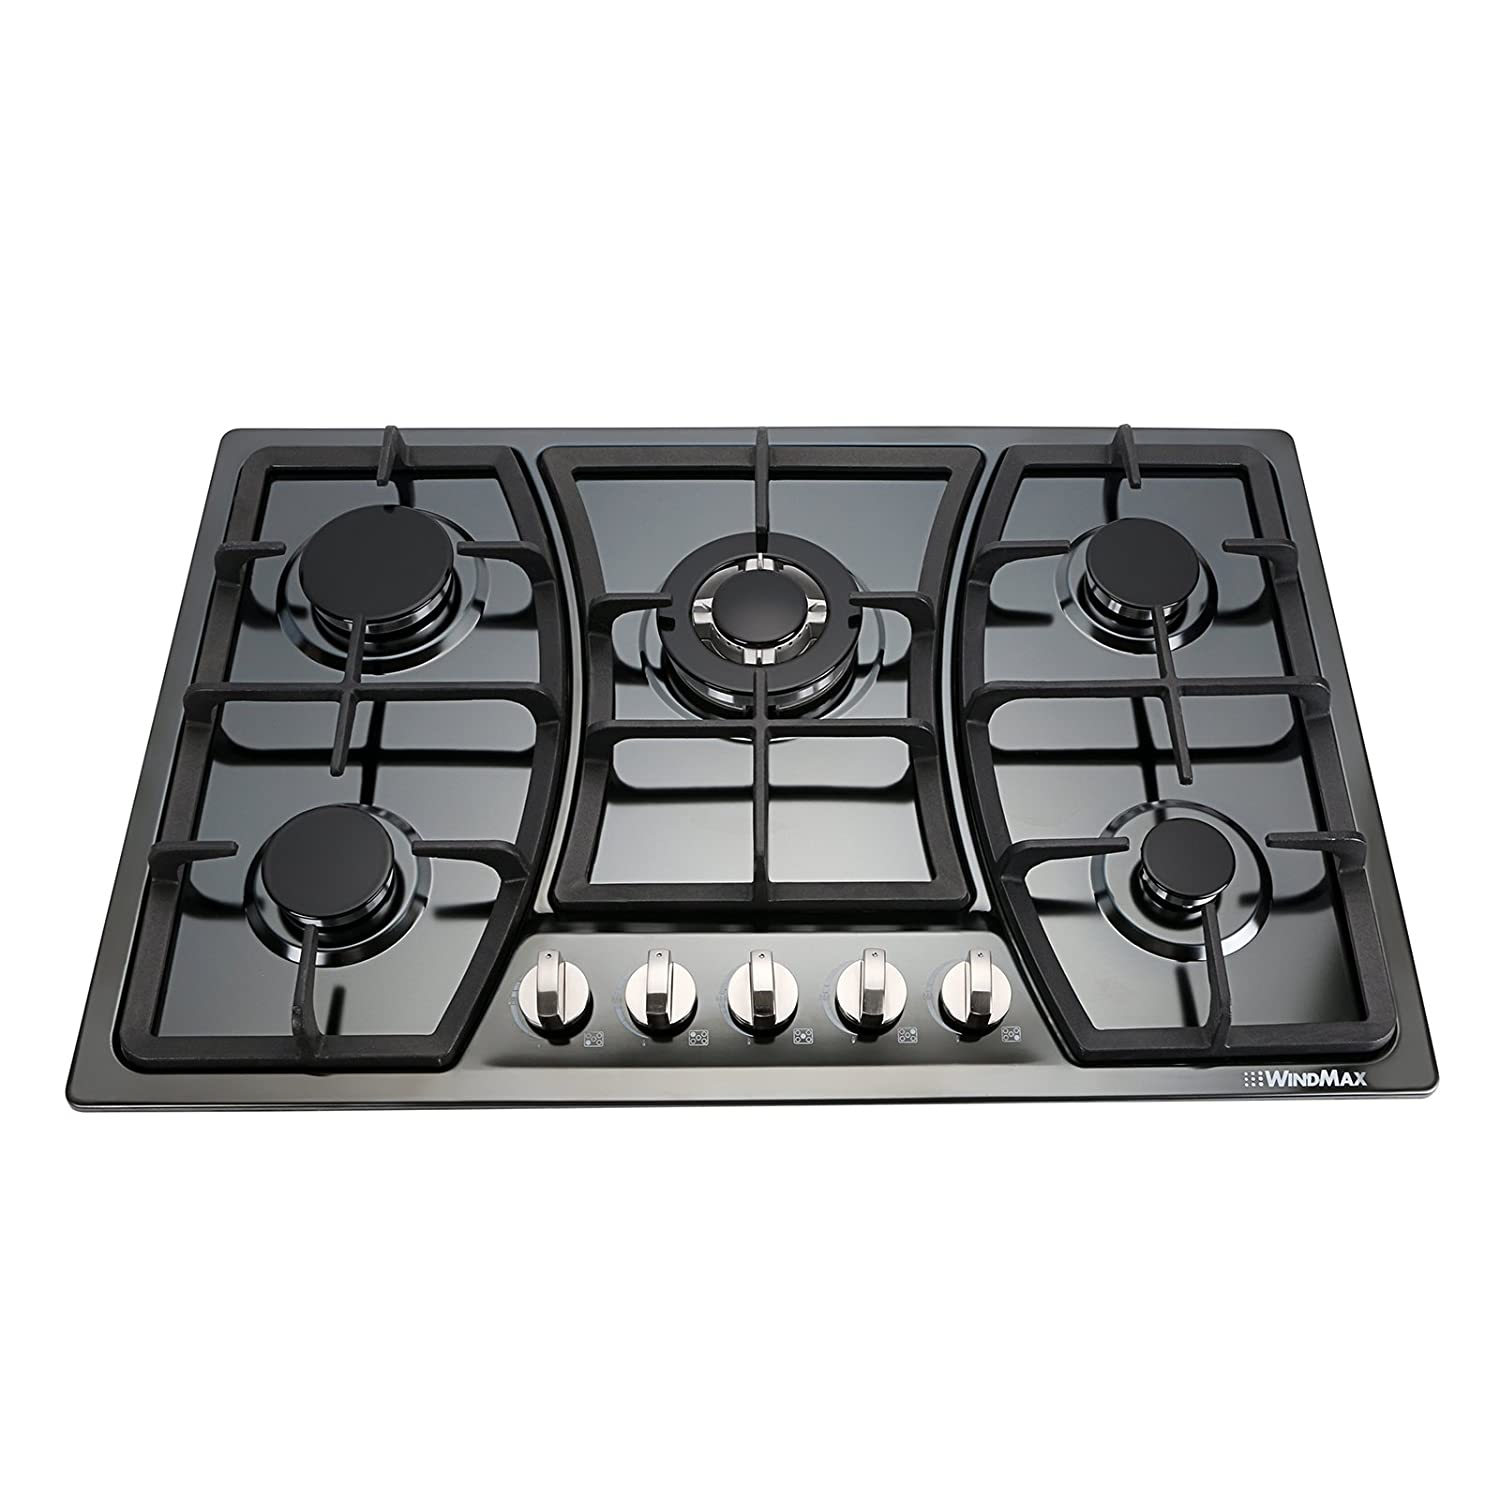 Windmax 30 Inchs Black Titanium Stainless Steel 5 Burners Built-In Stoves NG/LPG Cooktop Cookware